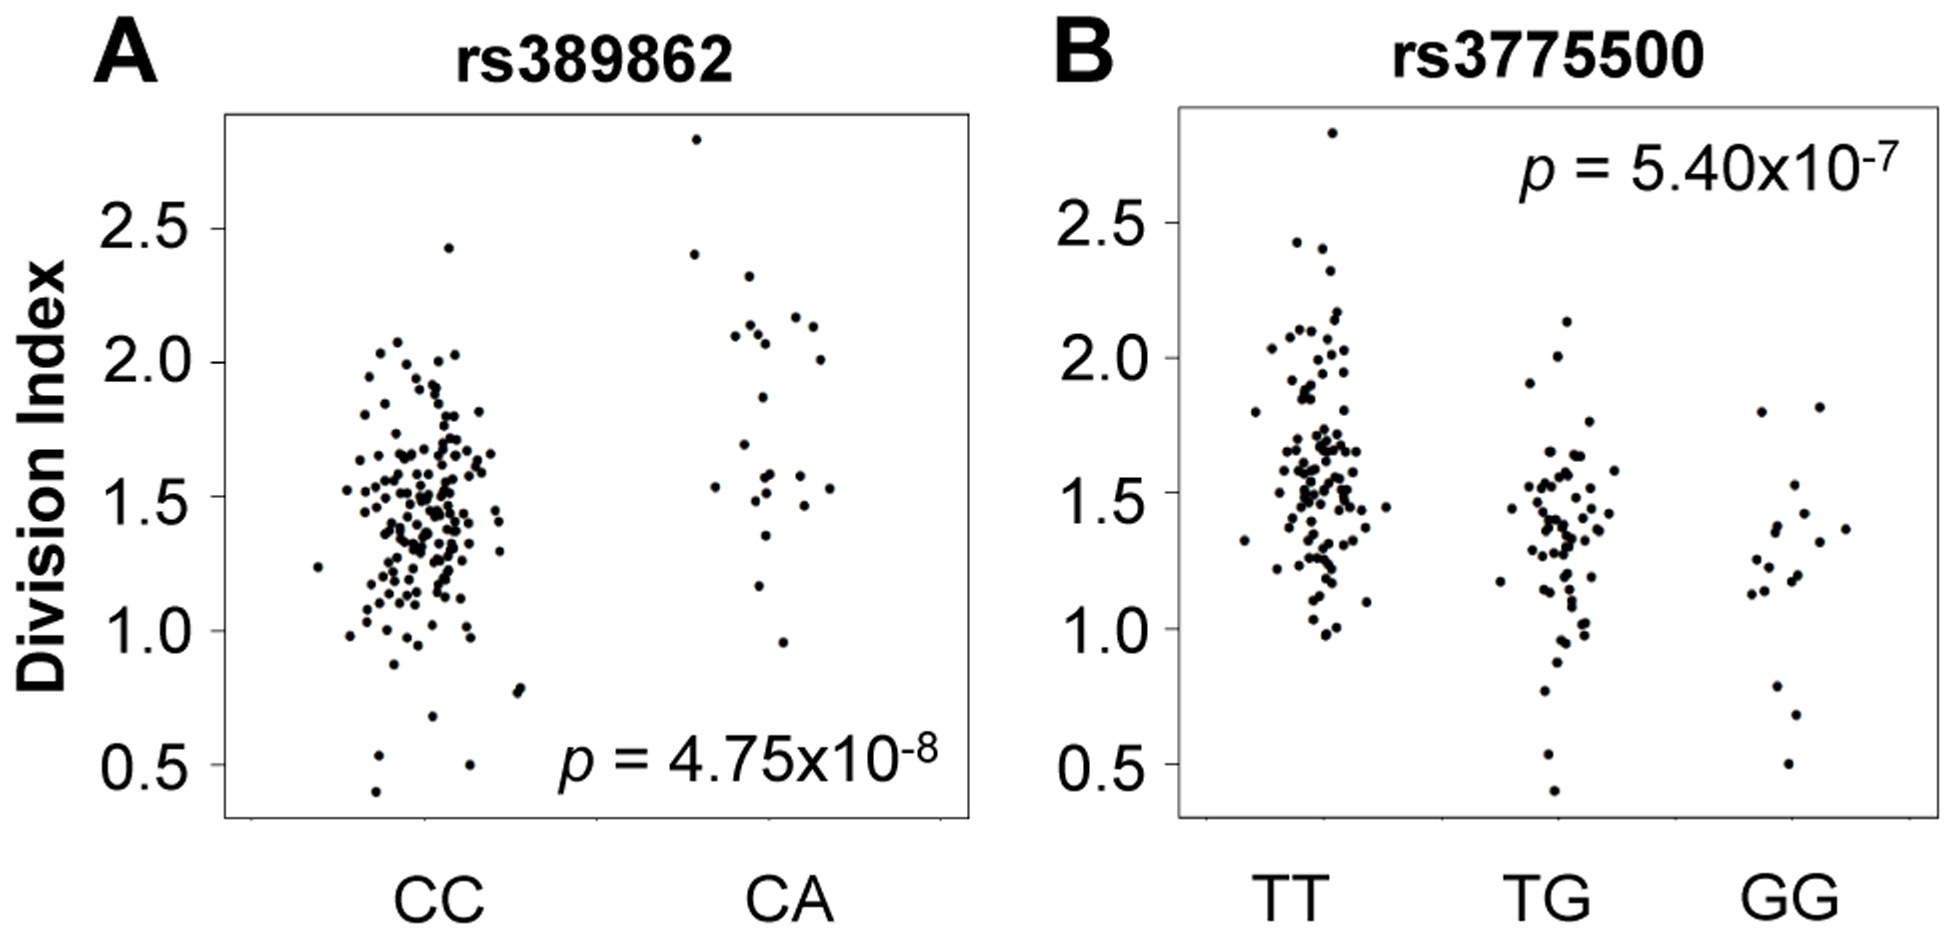 Genome-wide association to division index (the average number of division undergone by all cells).